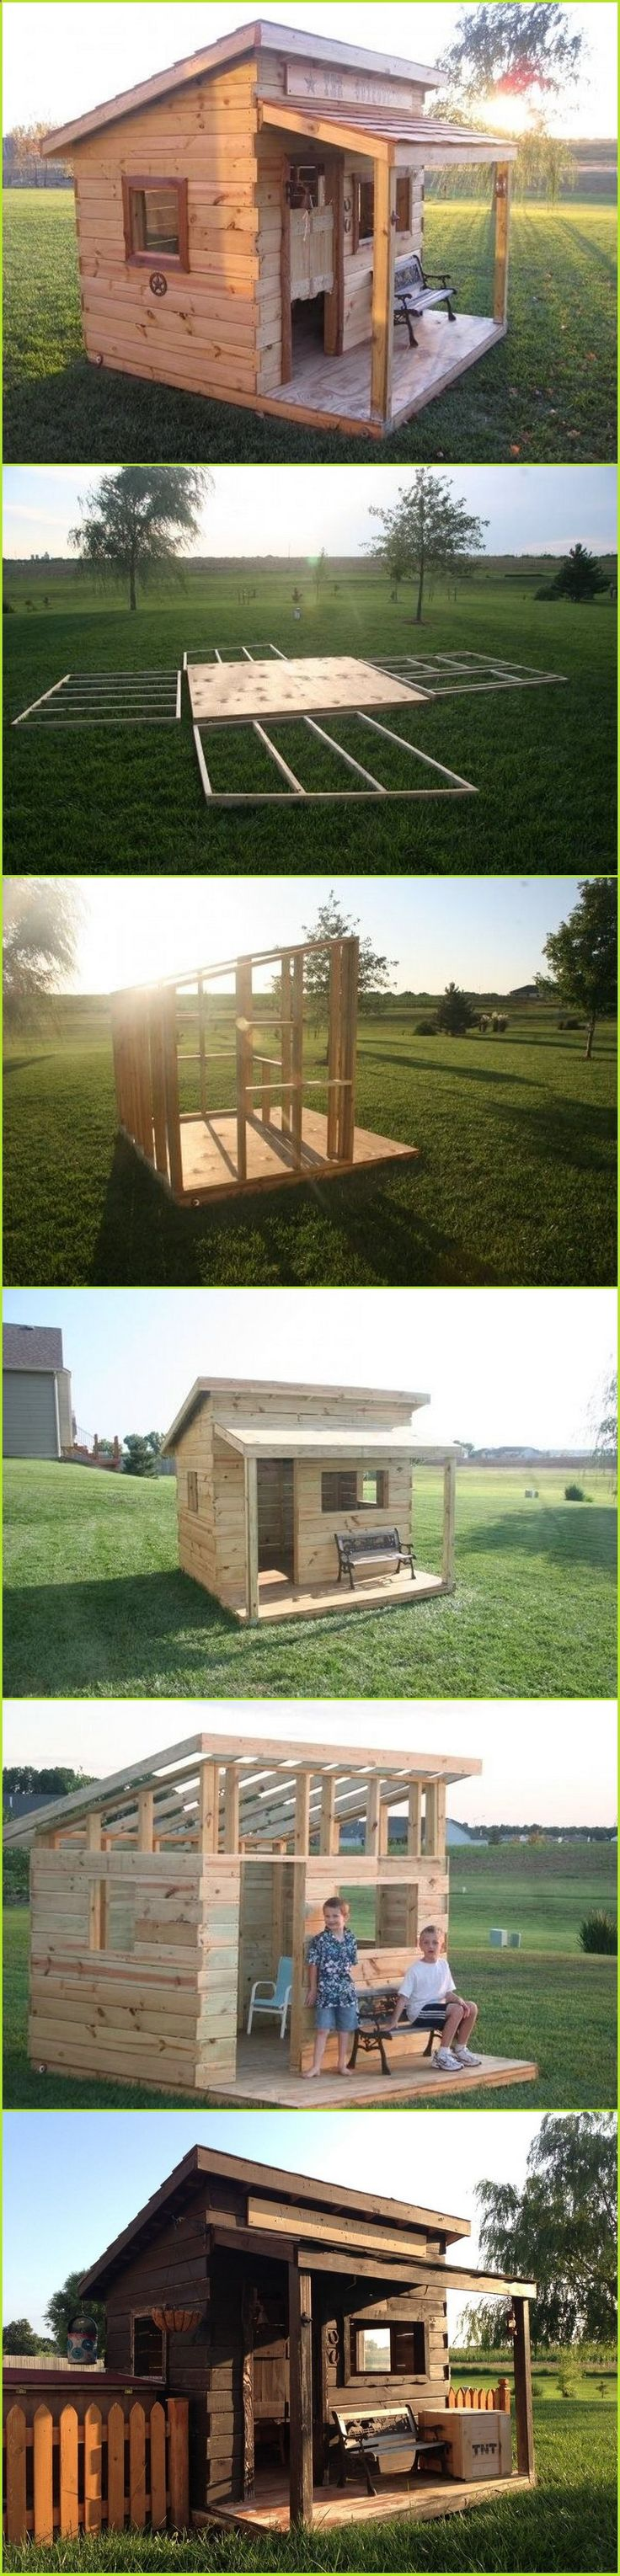 4808 best tiny house images on Pinterest